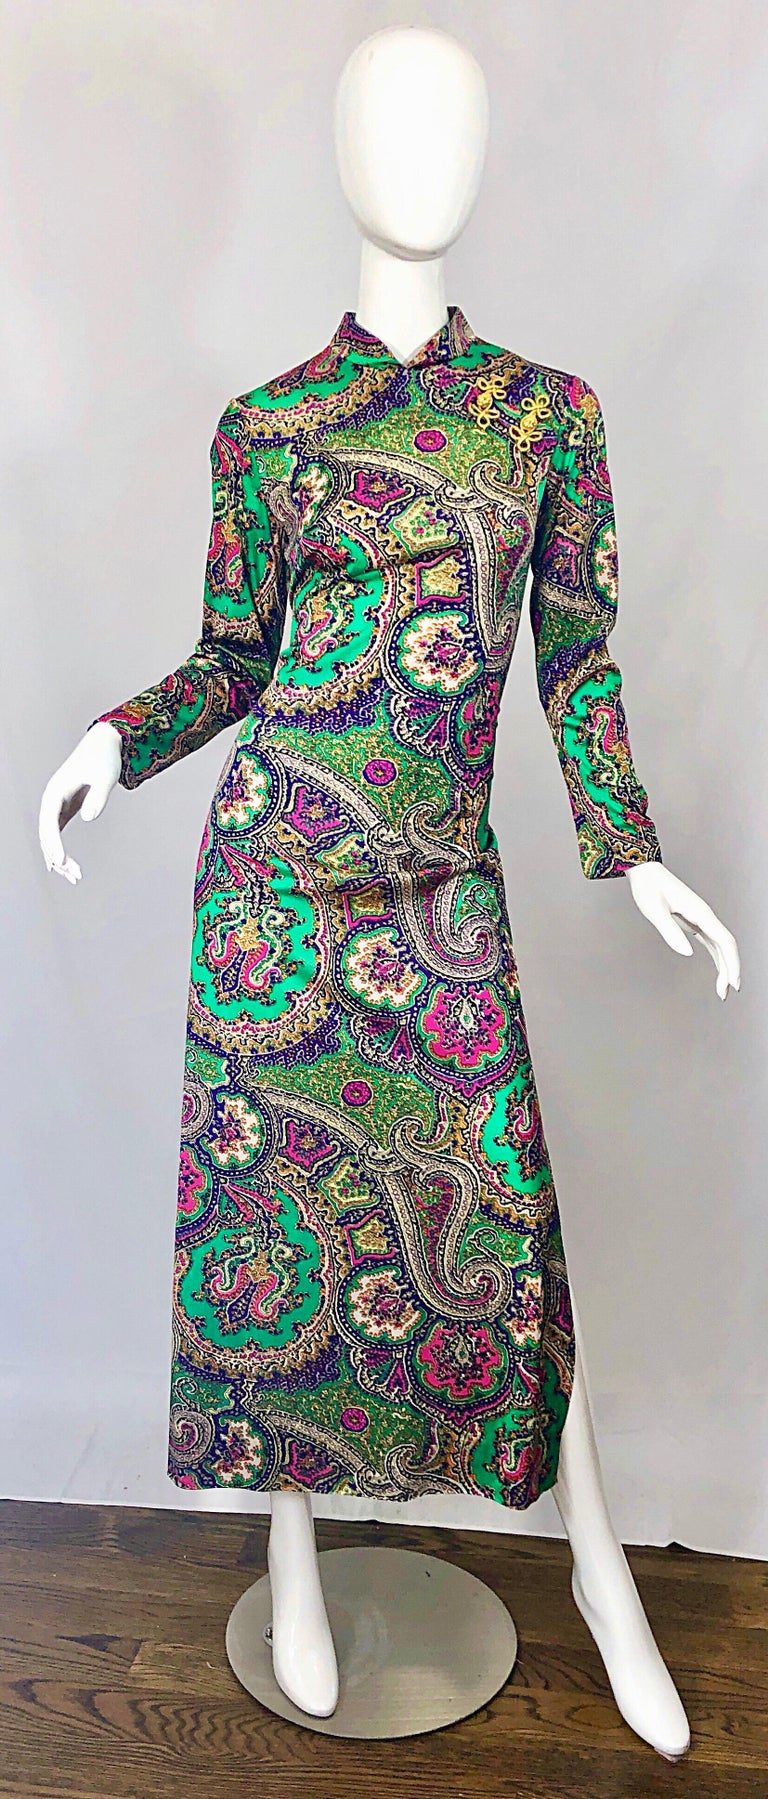 Incredible vintage 70s cheongsam Asian inspired colorful paisley print jersey maxi dress! Features metallic gold embroidery at top left shoulder. Vibrant colors of kelly green, purple, pink, fuchsia and white throughout. Full metal zipper up the